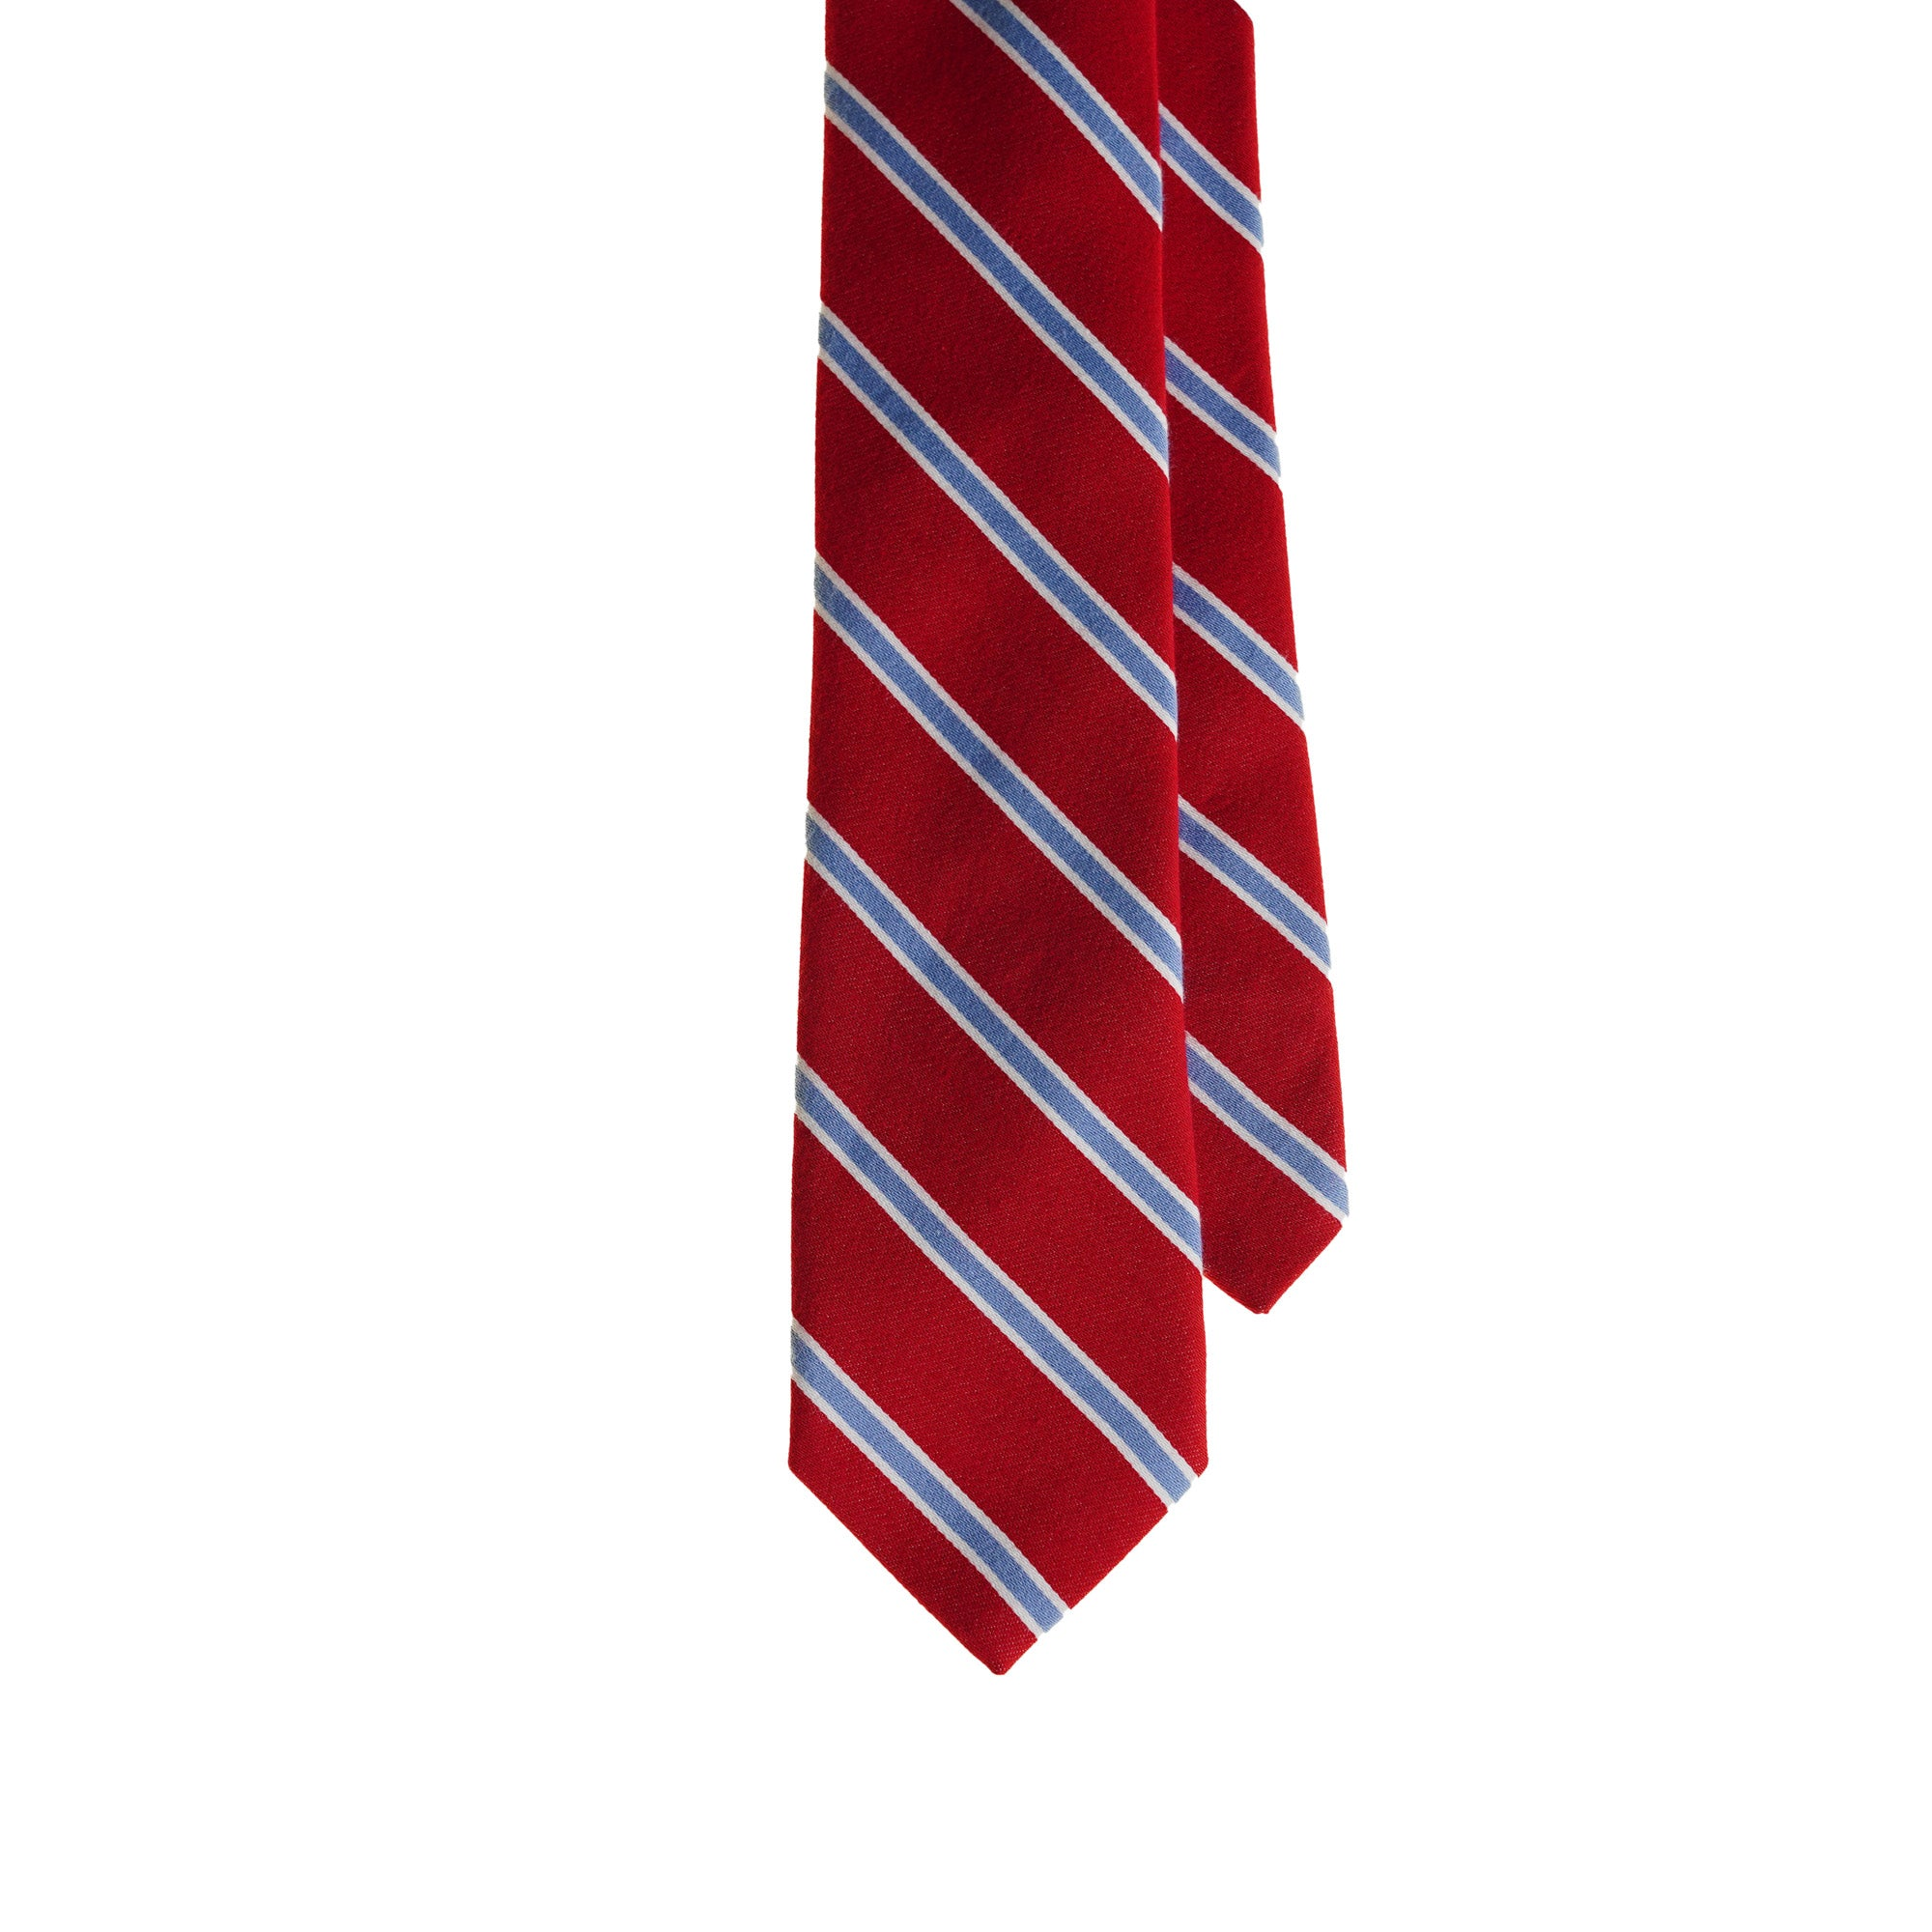 Ties - Red Blue Stripe